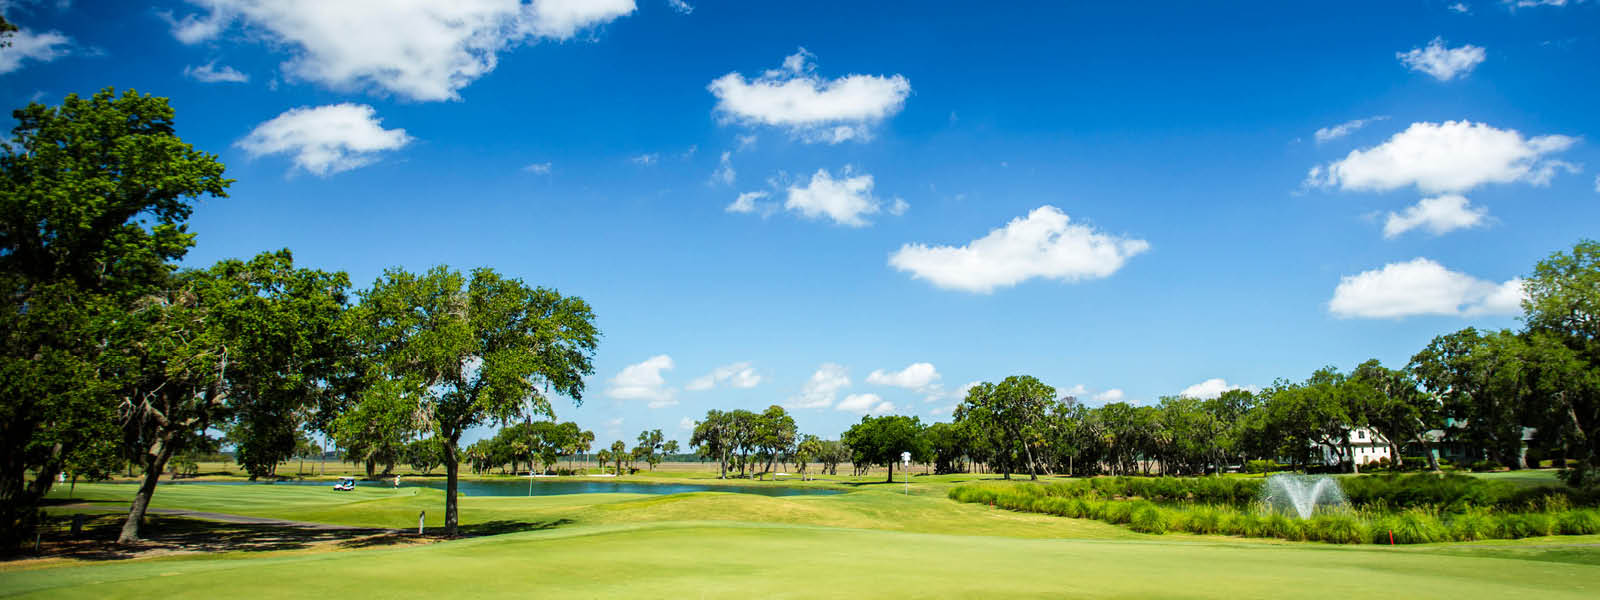 Golf Communities in South Carolina | Dataw Island | SC Gated Communities